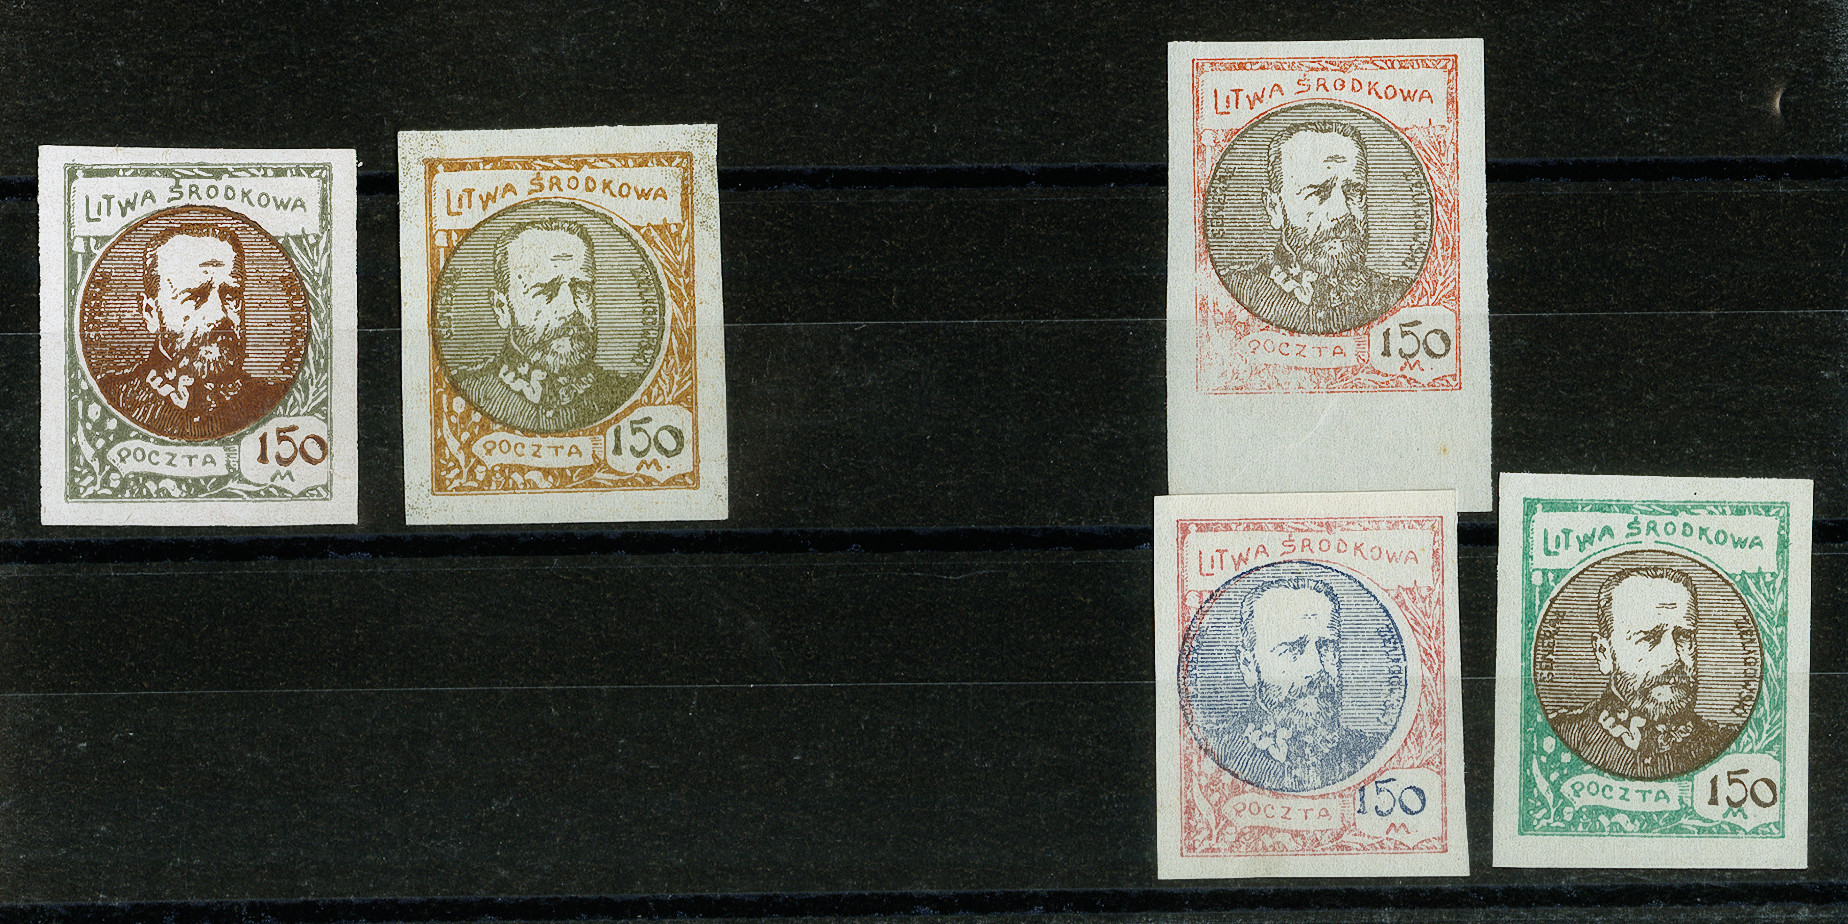 Lot 188 - europe central lithuania -  Heinrich Koehler Auktionen 373rd Heinrich Köhler auction - Day 1